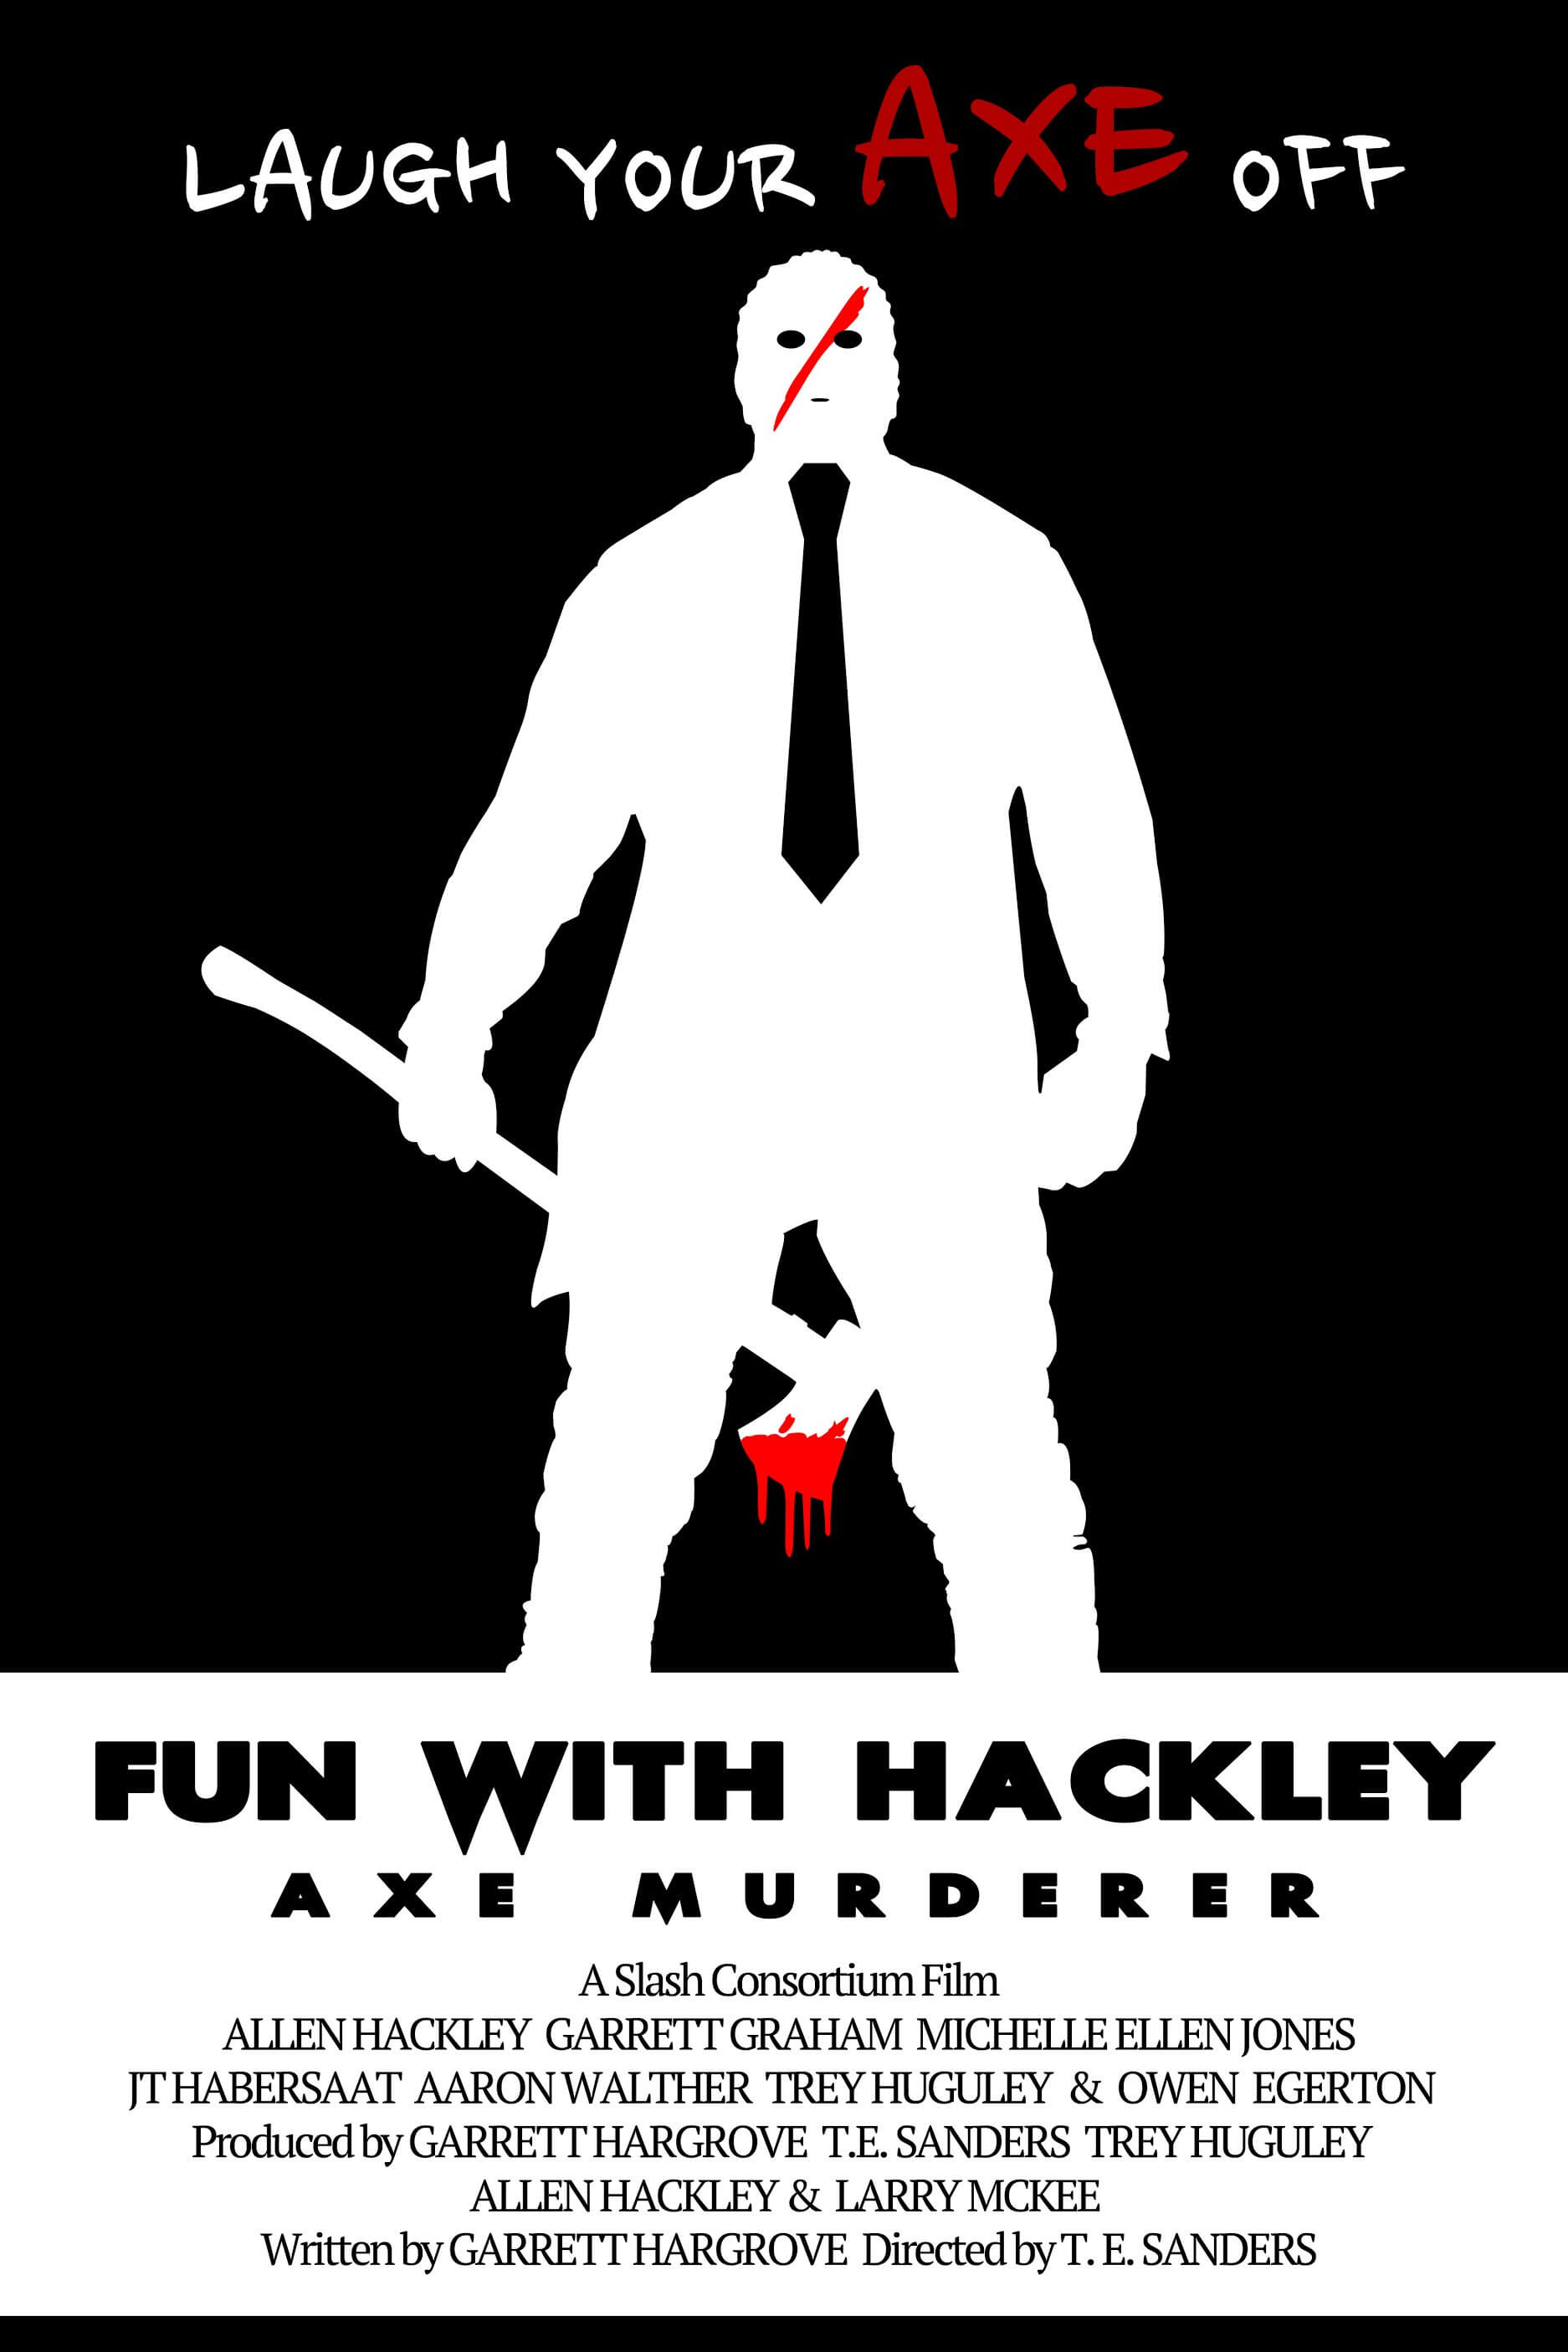 Fun With Hackley7 converted 1 - Fun with Hackley Trailer Will Have You Laughing Your Axe Off